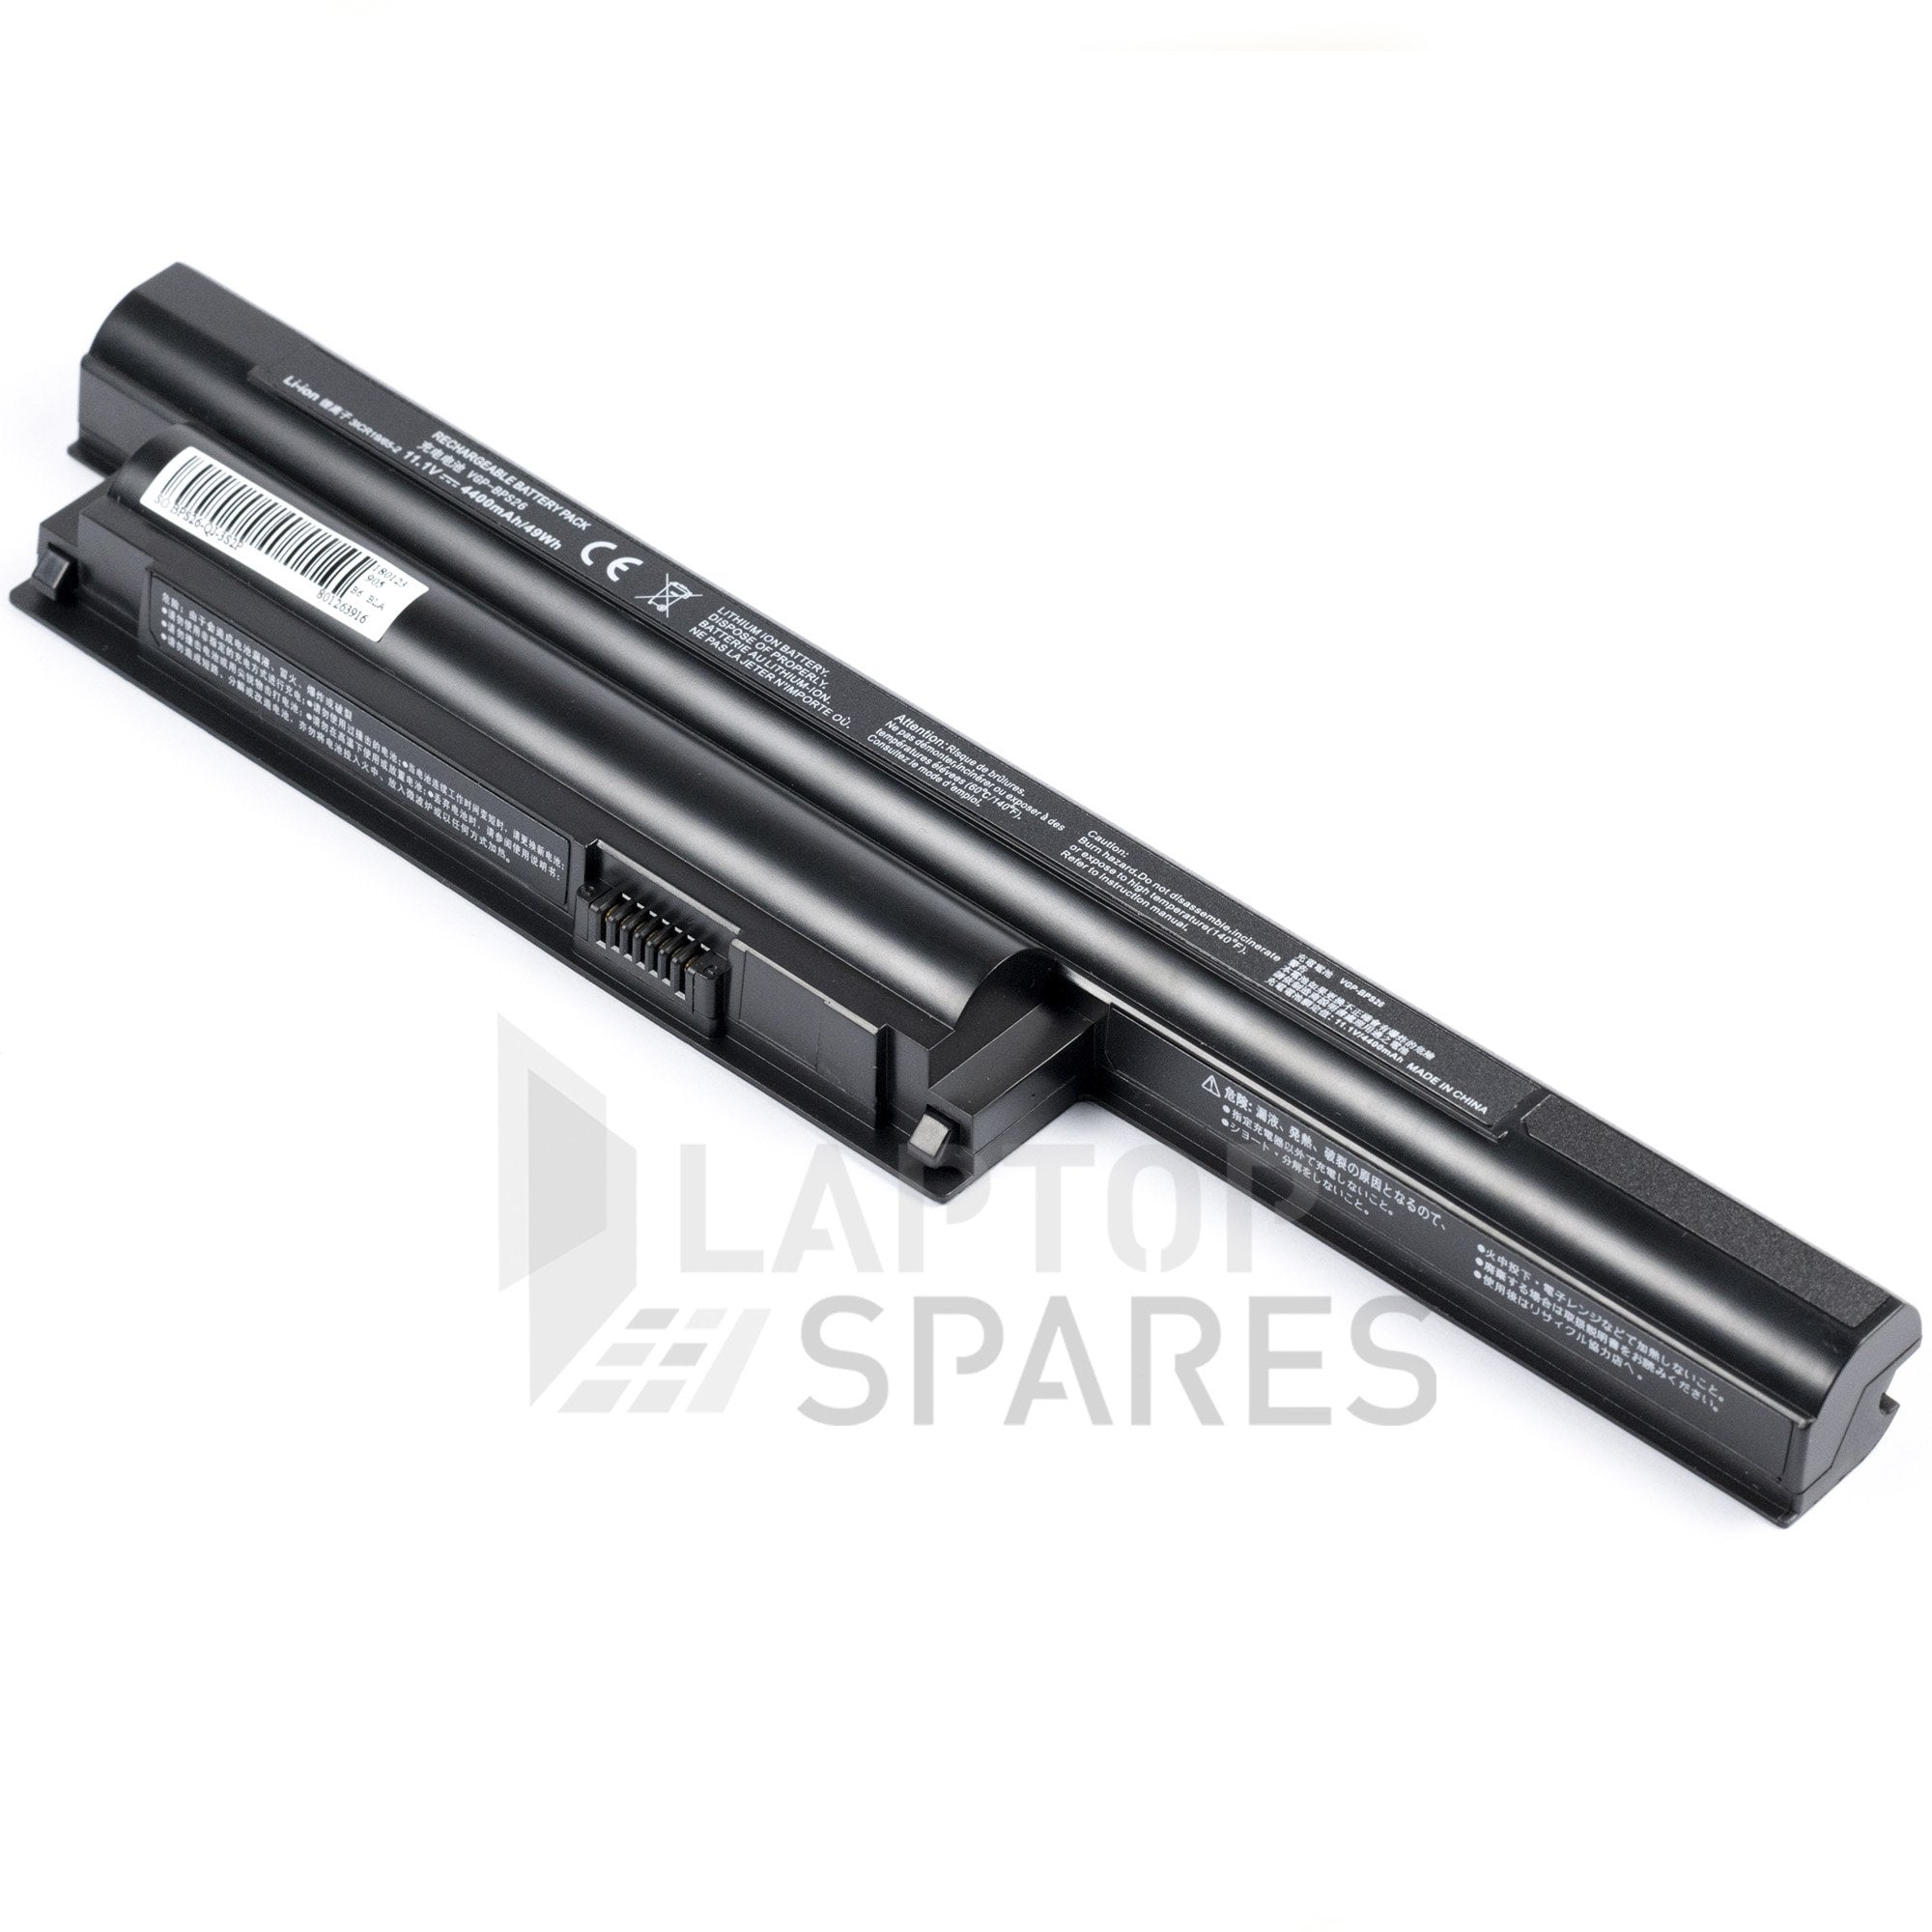 Sony Vaio SVE14118FXP SVE1411JFXP 4400mAh 6 Cell Battery